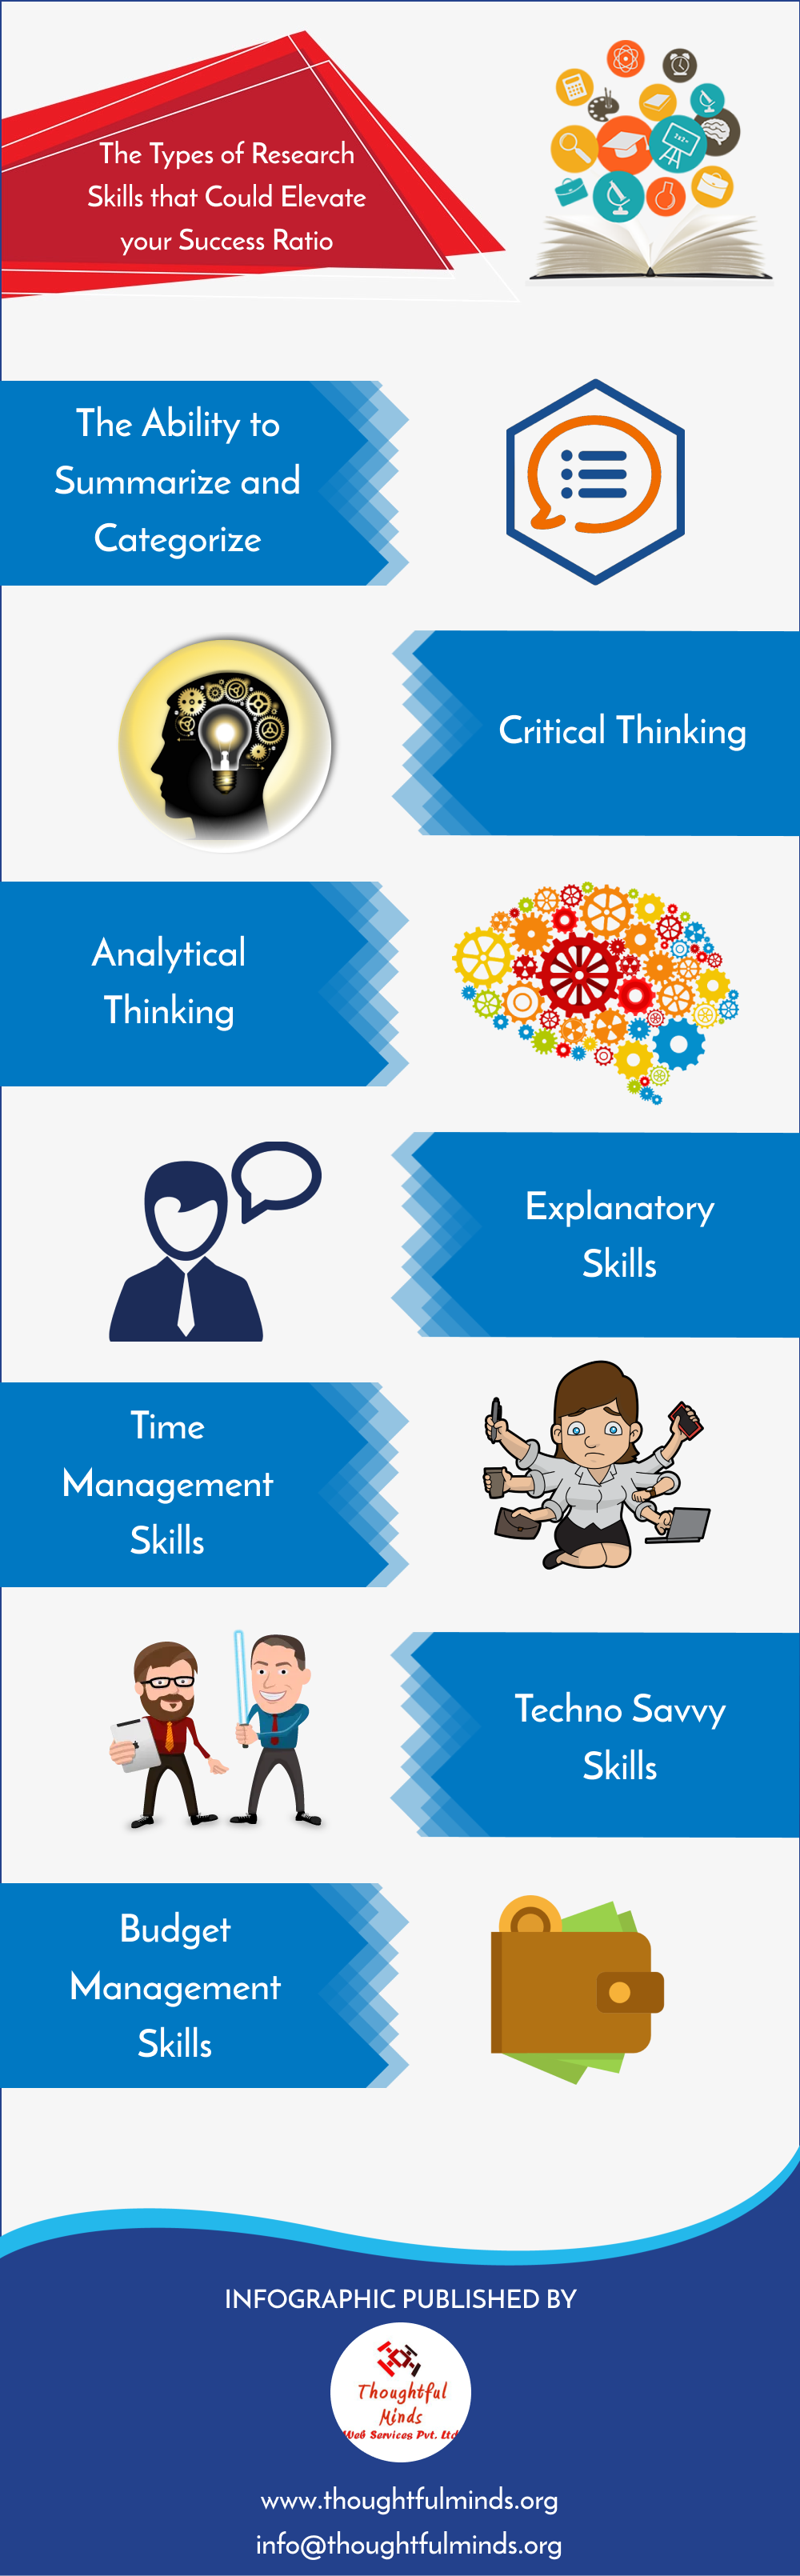 Types of Research Skills Infographic - ThoughtfulMinds